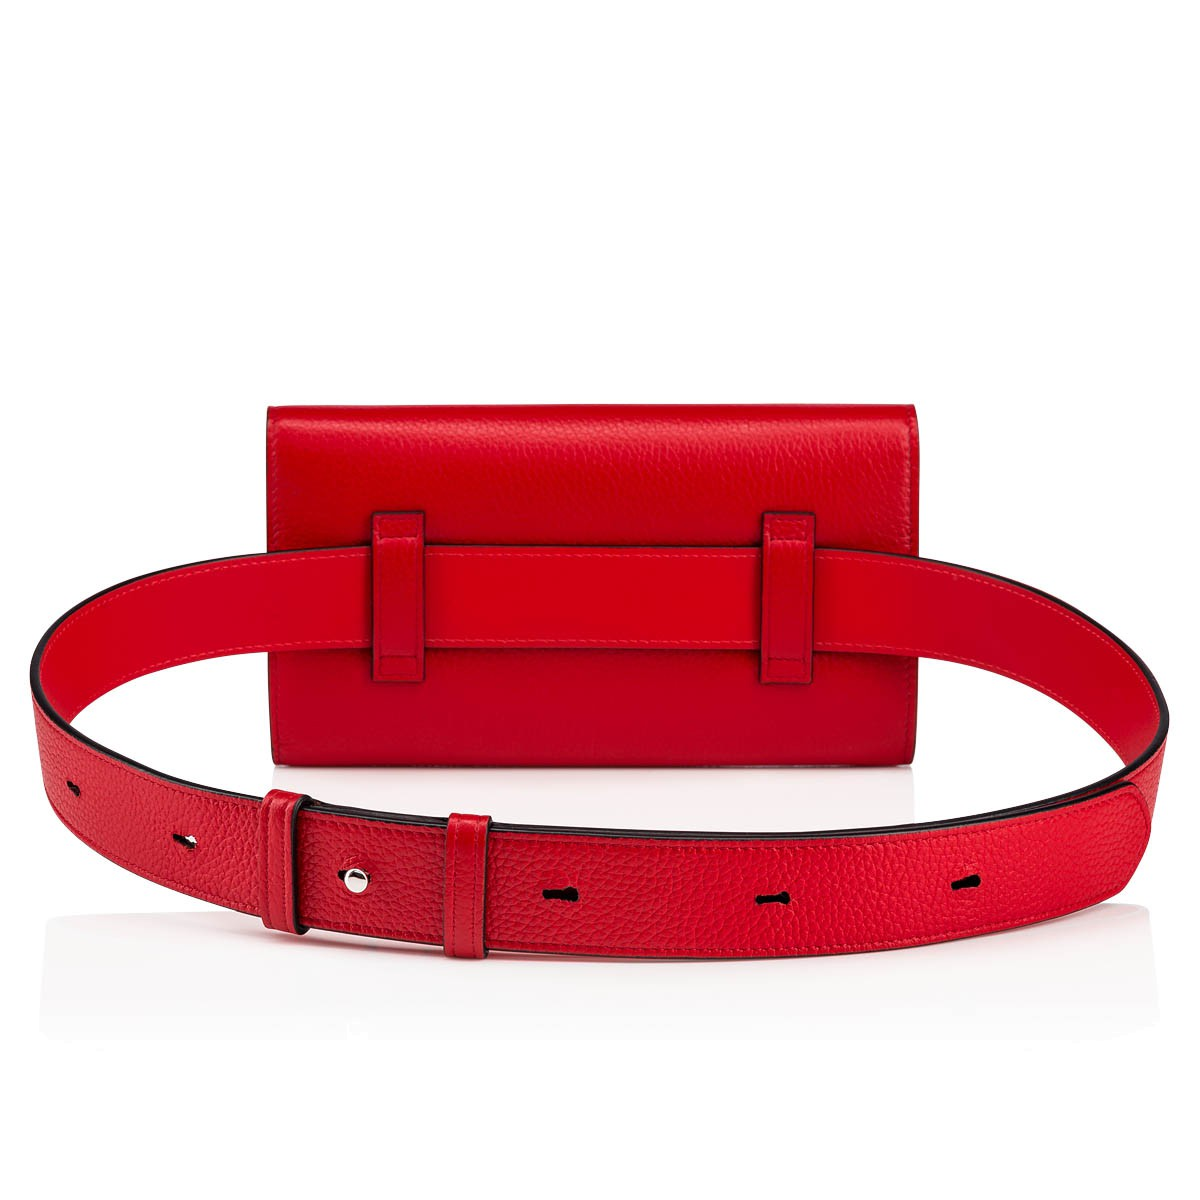 Small Leather Goods - Boudoir Chain Belt - Christian Louboutin